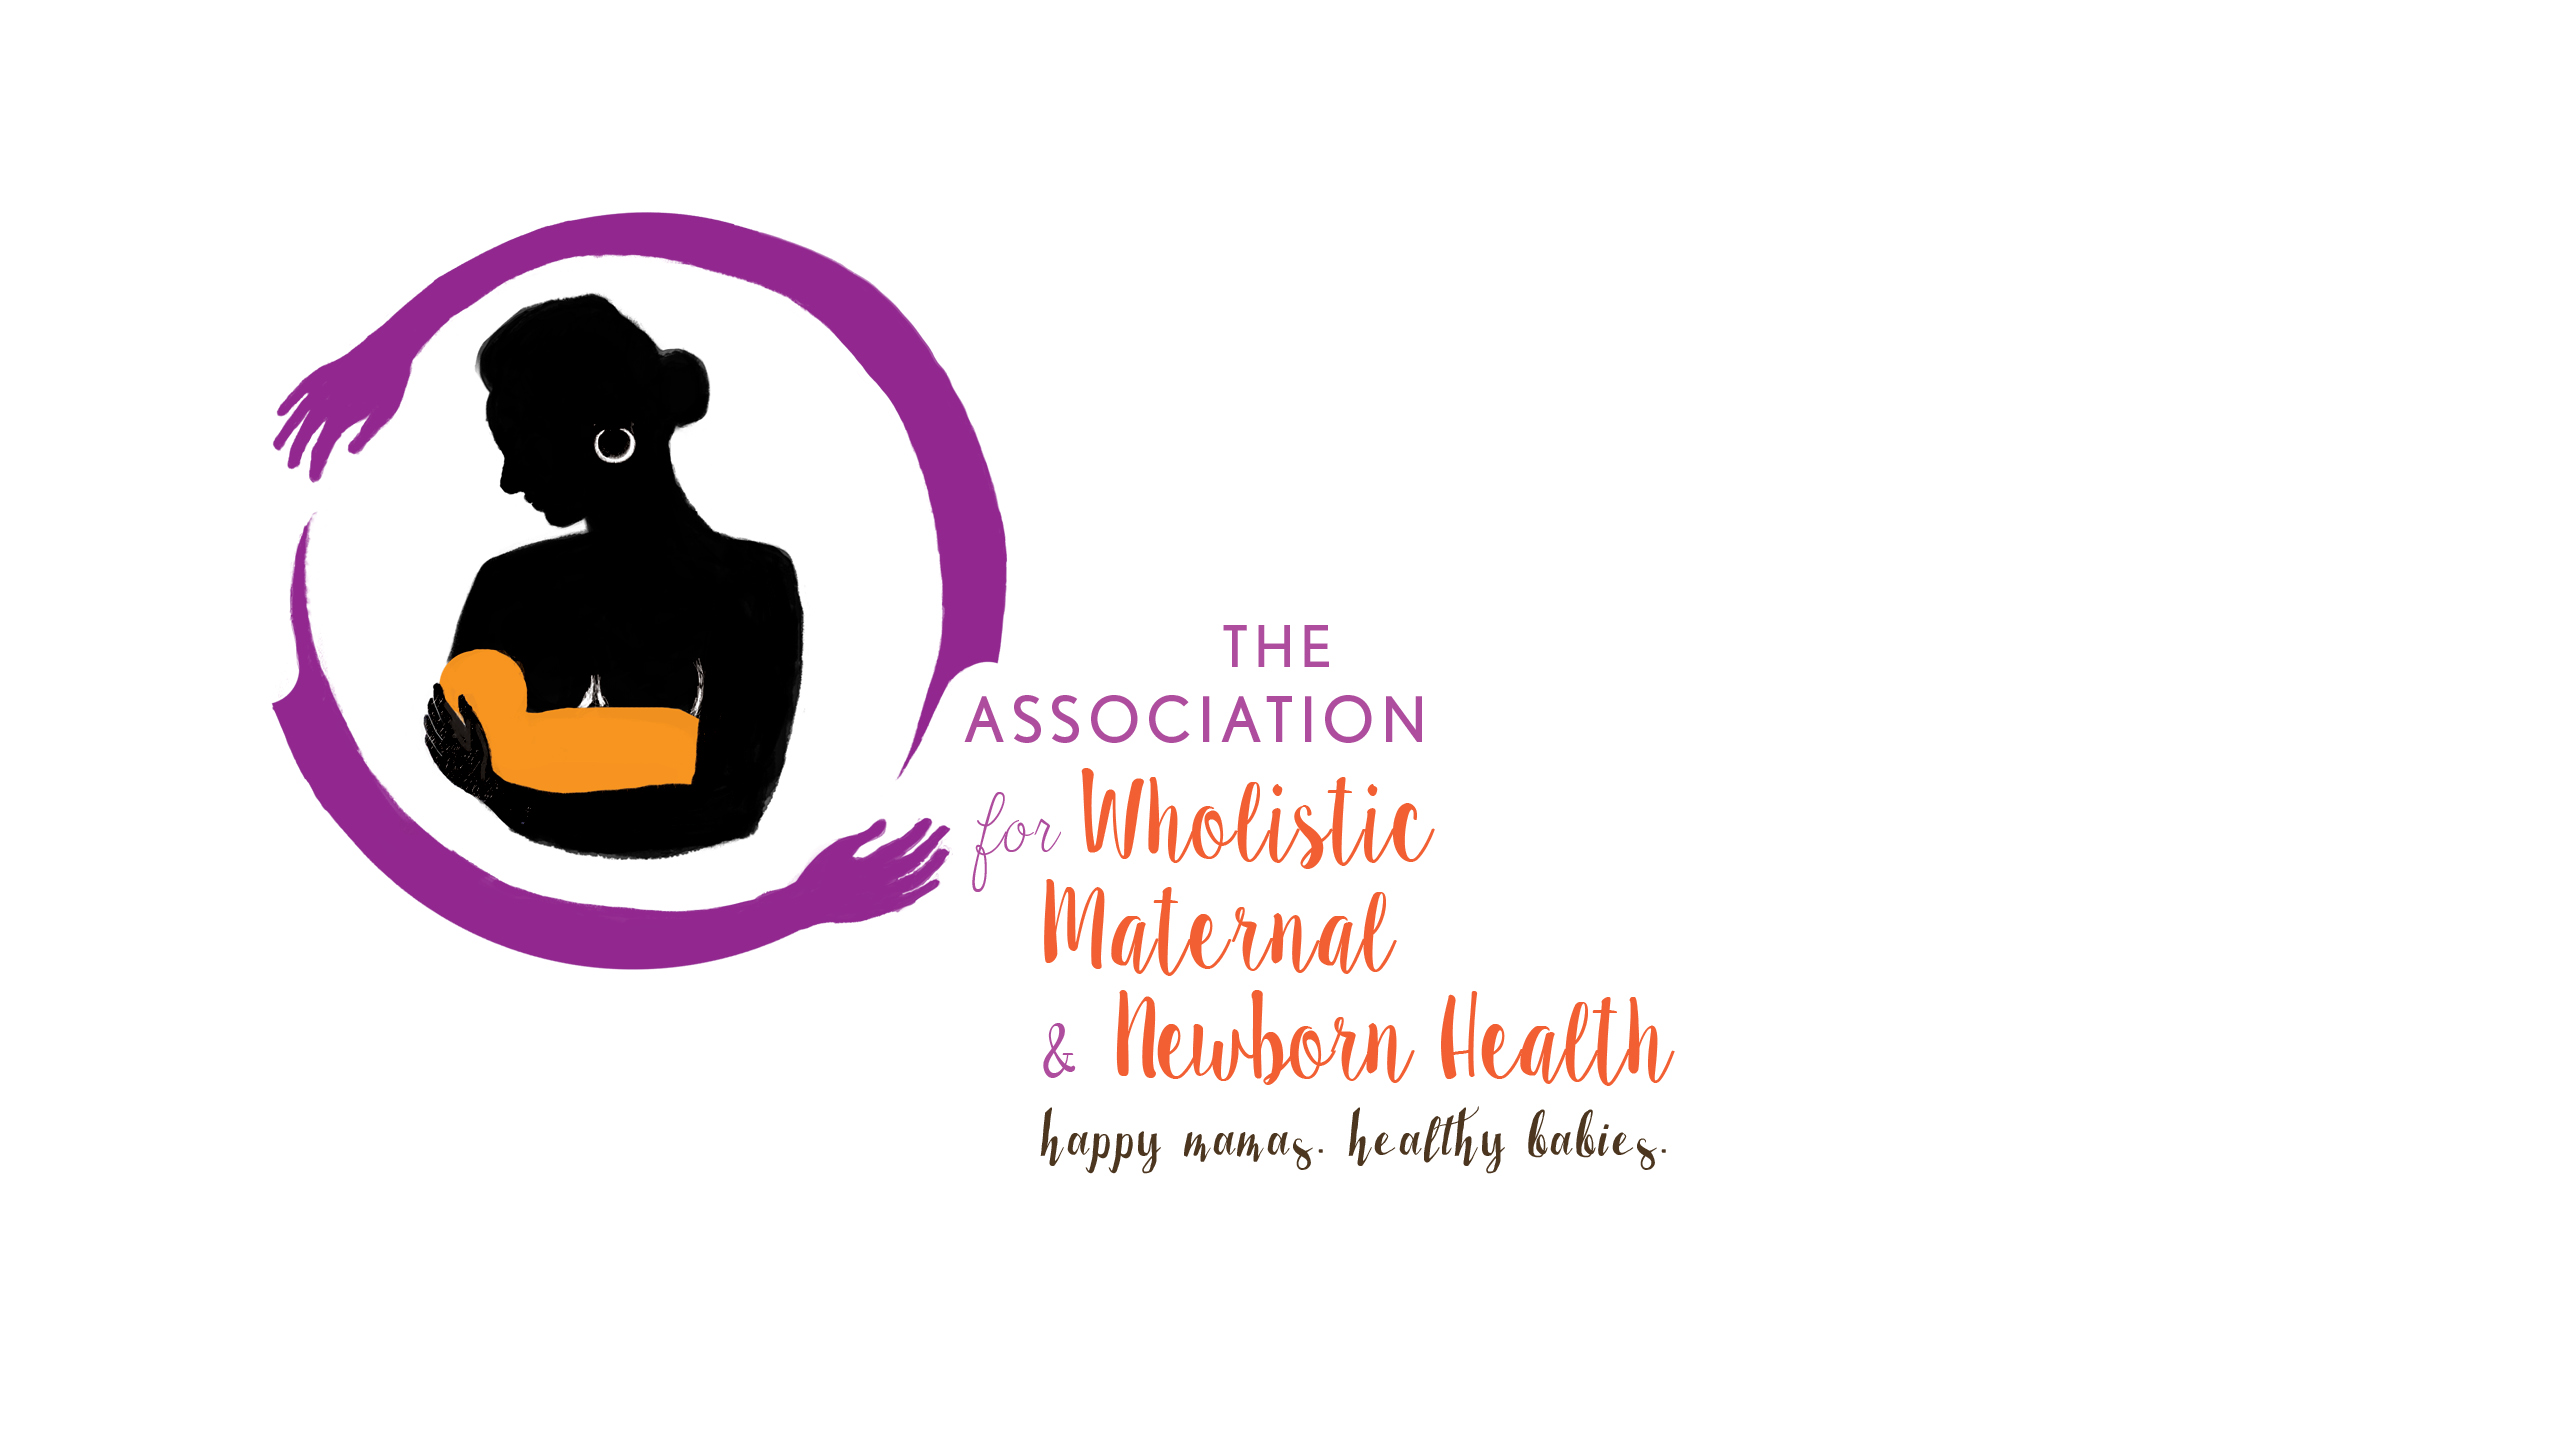 The Association for Wholistic Maternal and Newborn Health